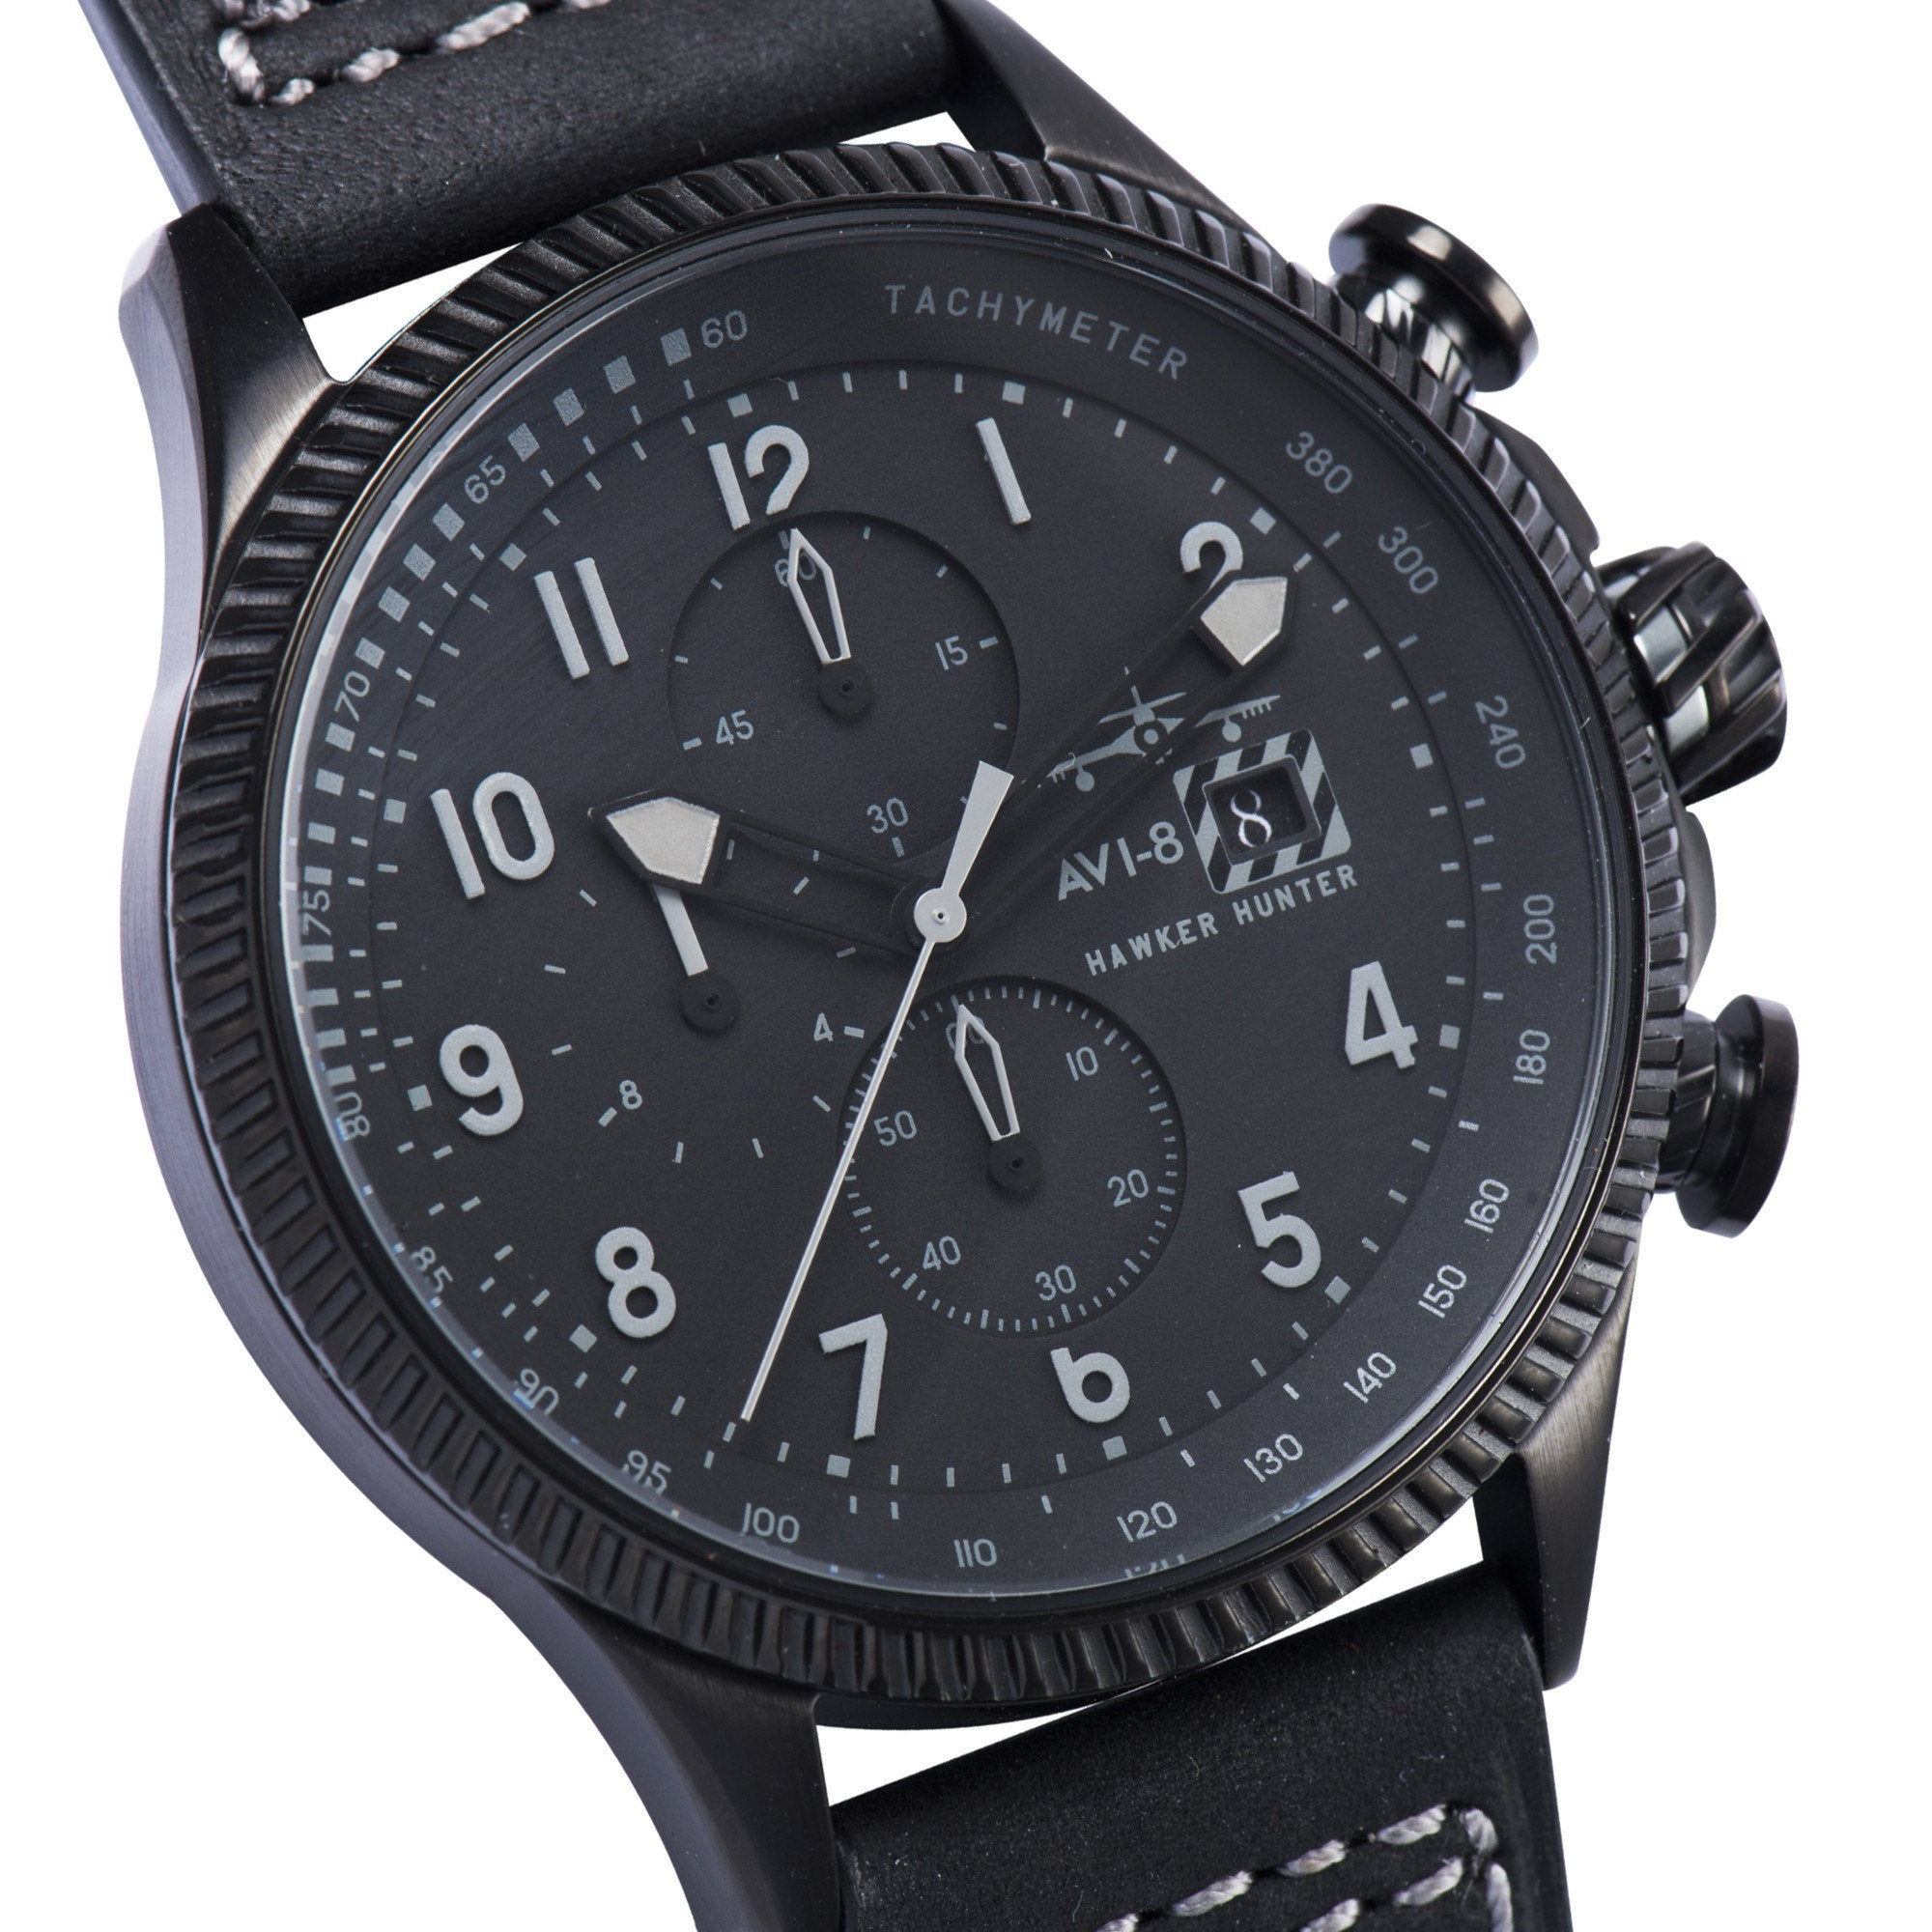 AVI-8 AVI-8 Hawker Hunter Men's IP Black Chronograph Watch with Black Genuine Leather Strap and Extra Black Nylon NATO Strap AV-4036-05